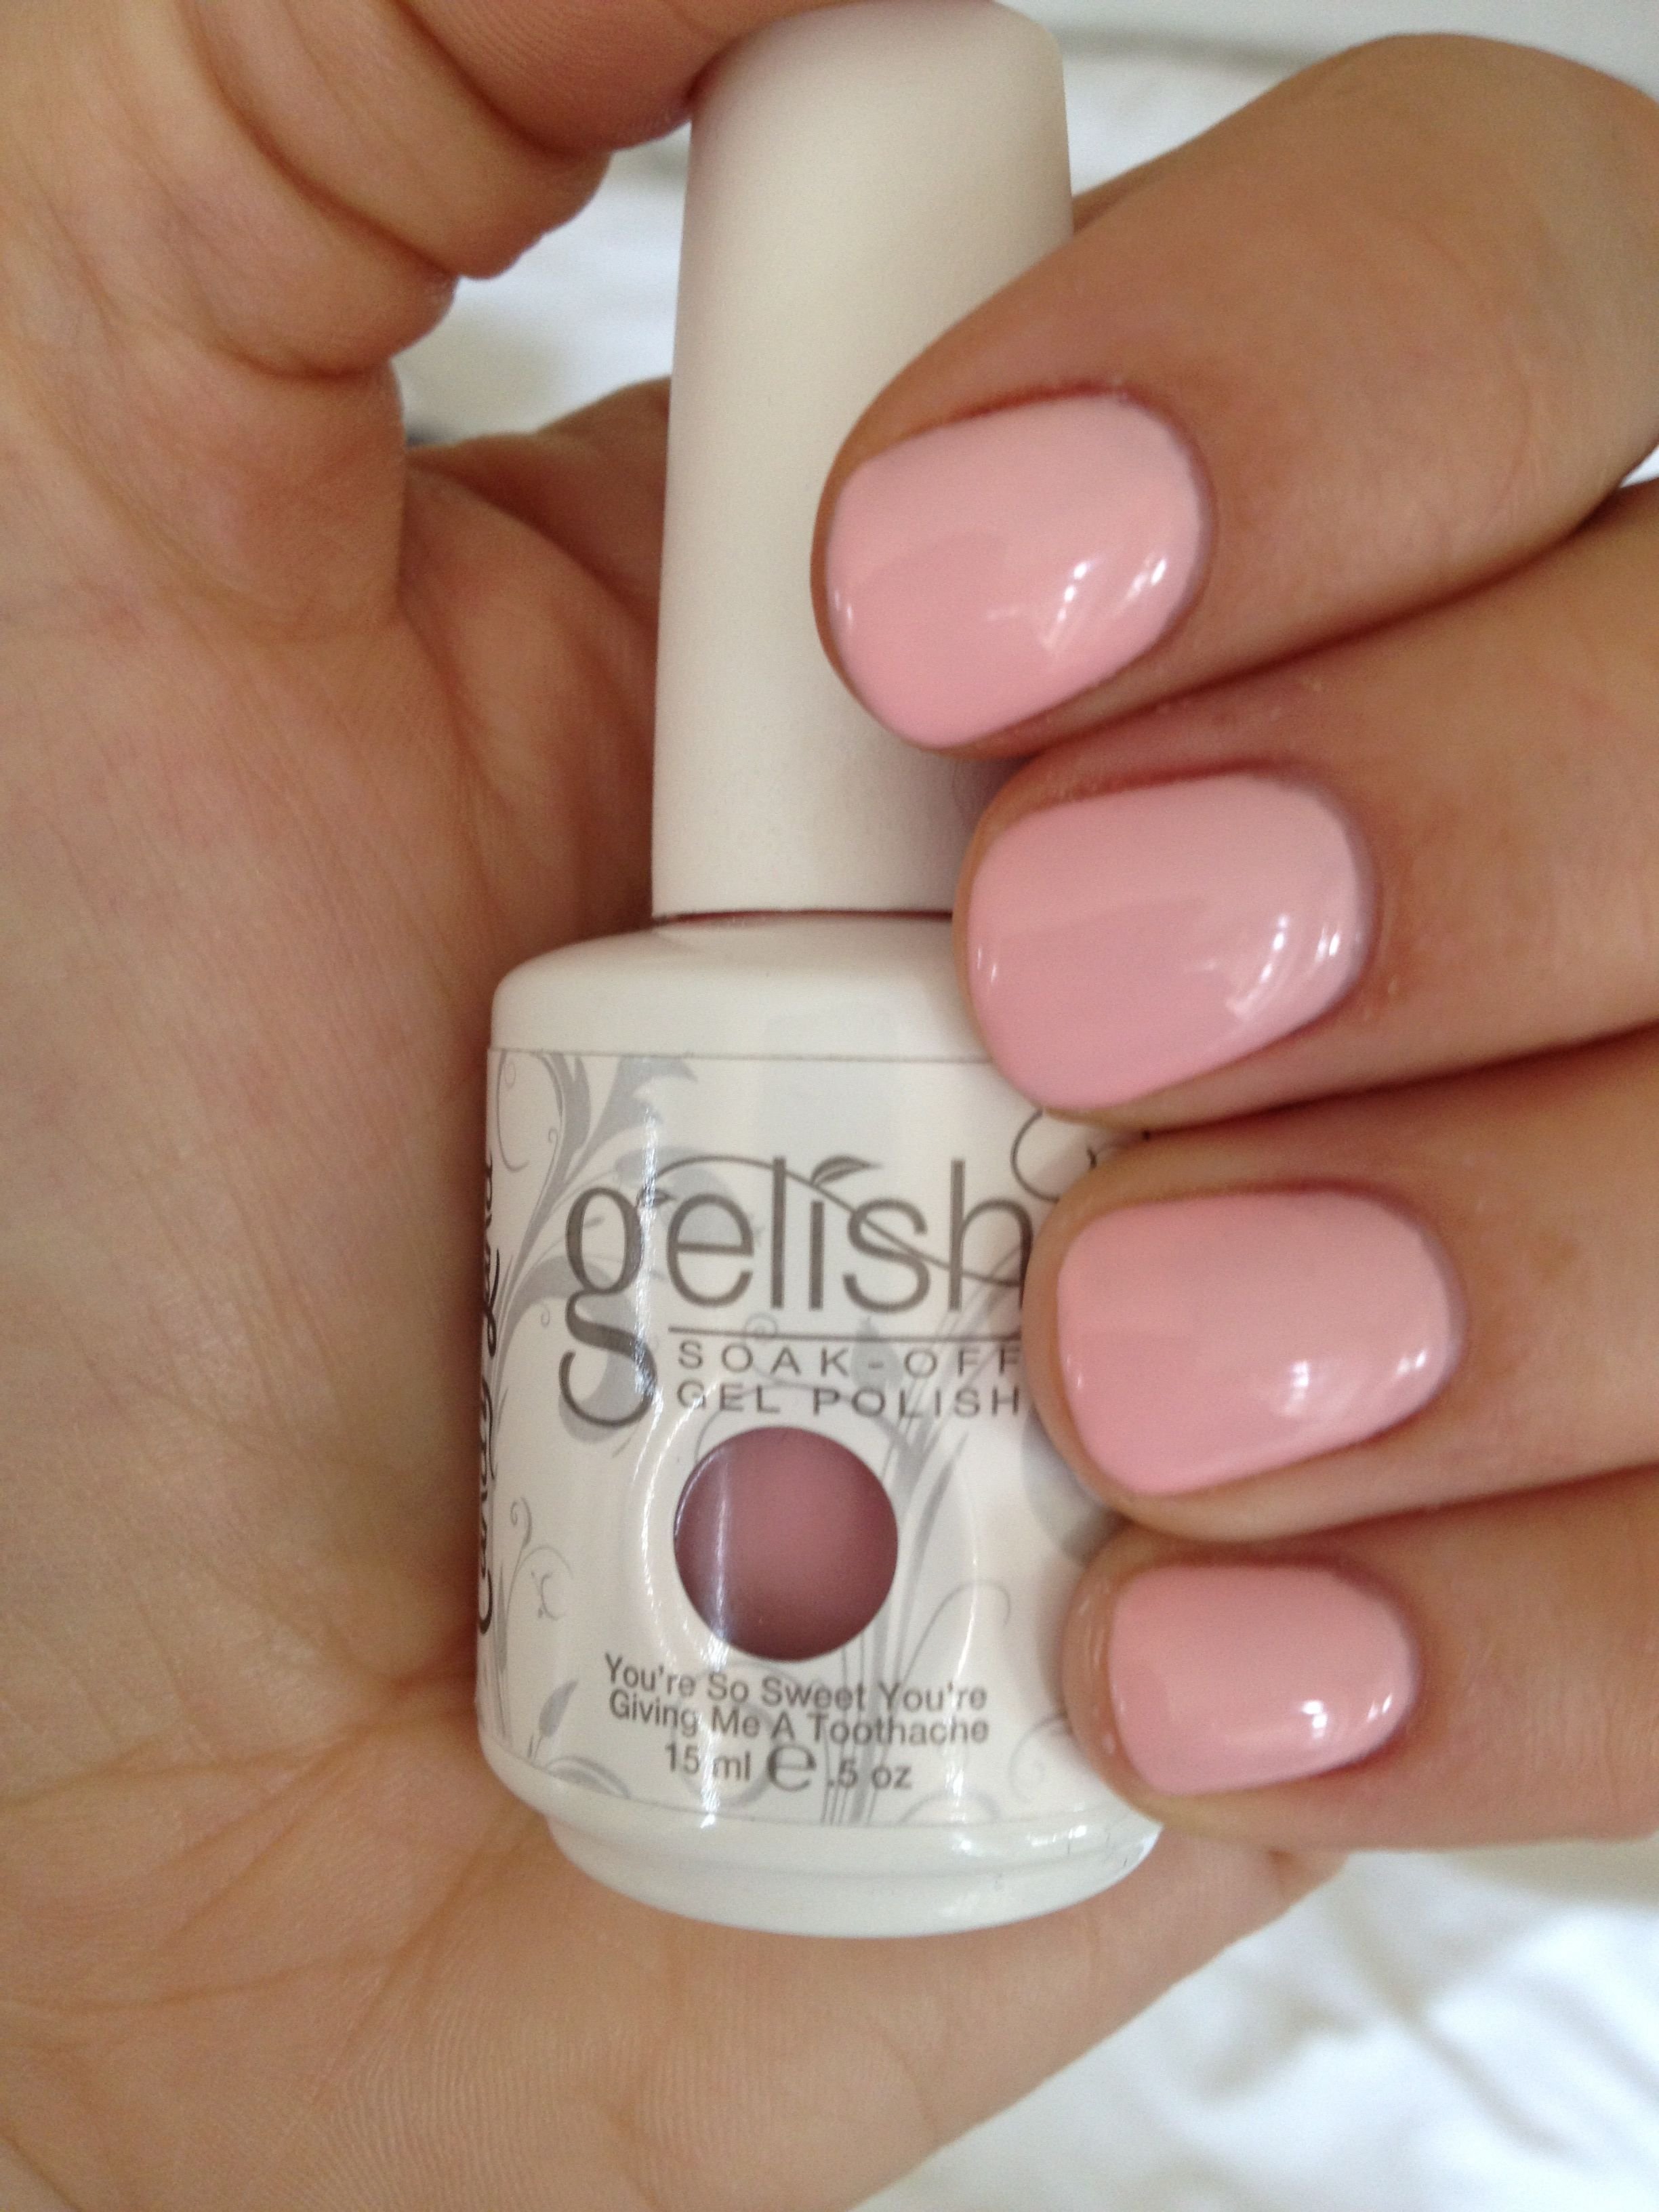 Pin By Victoria Perez On Pretty In Pink Gelish Nails Nails Gel Nail Colors